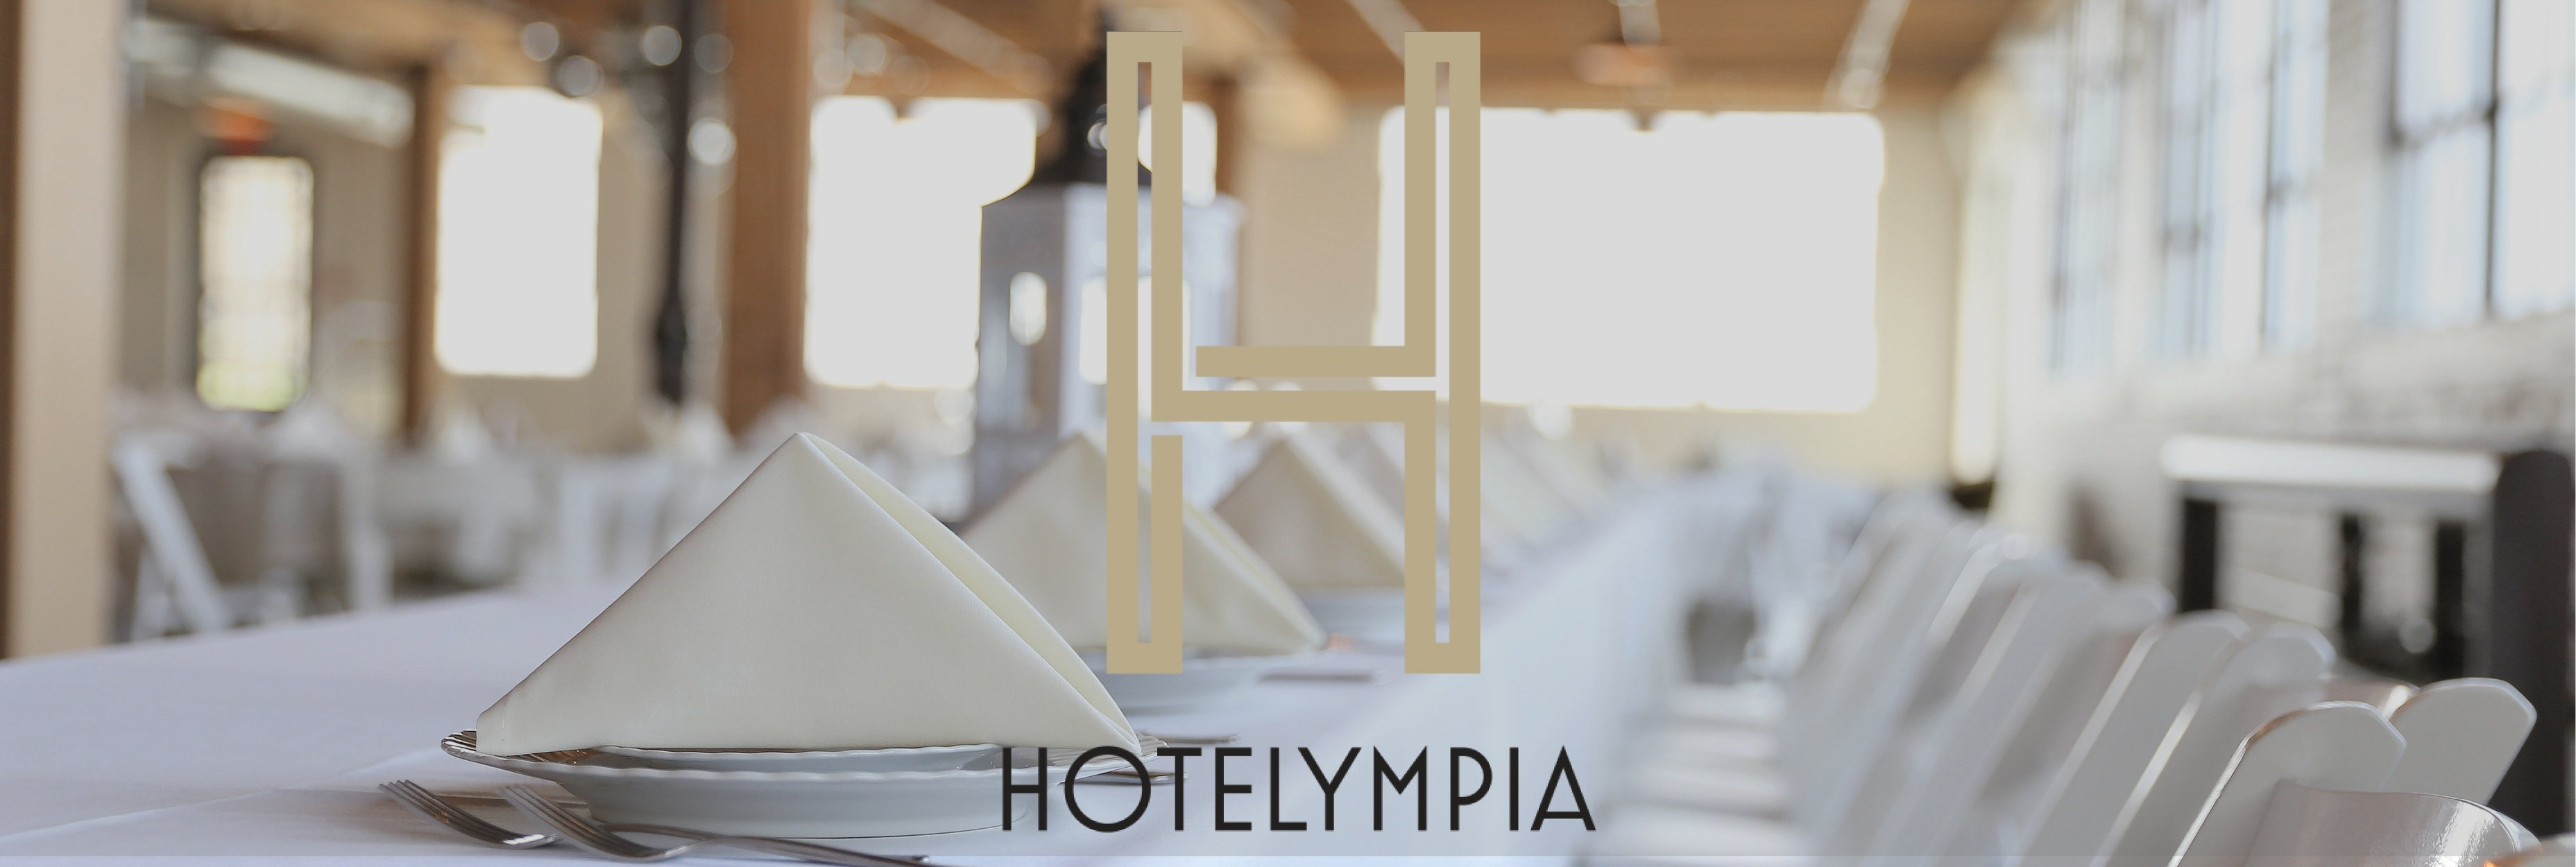 5 Interesting companies to watch from the Hotelympia 2018